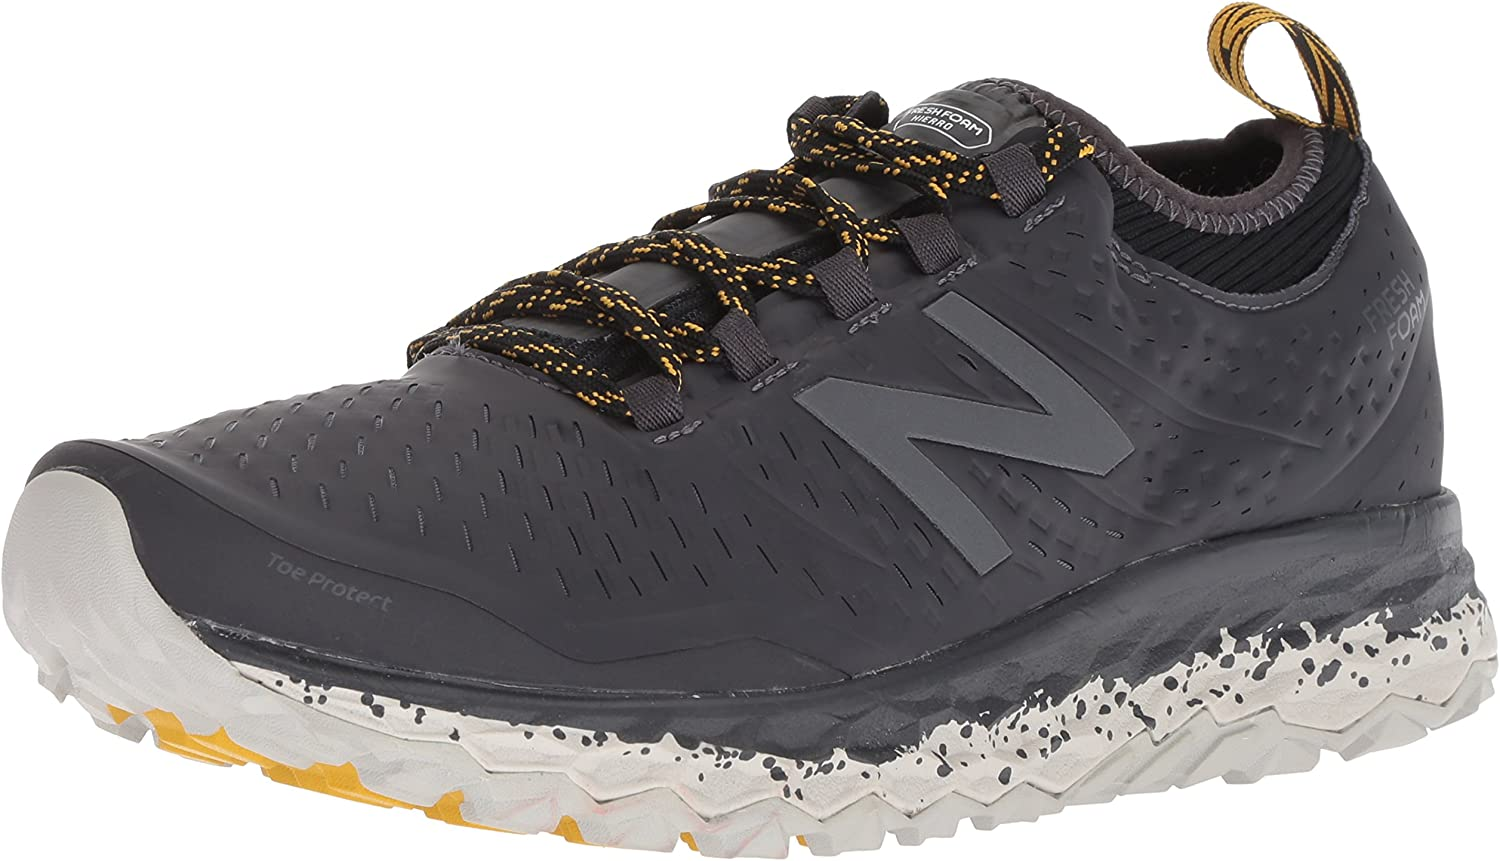 New Balance Mens Hierro V3 Fresh Foam Trail Running shoes